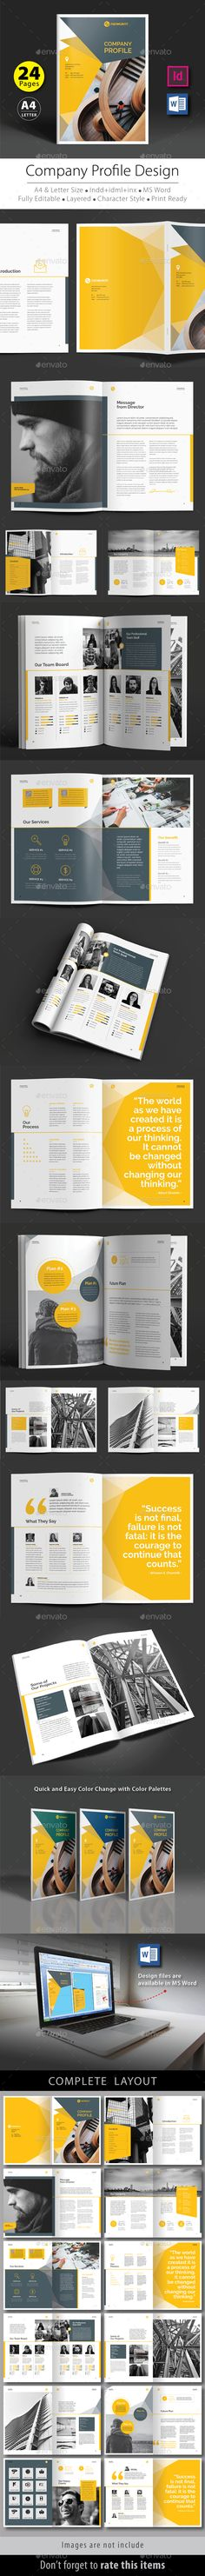 Company Profile Template InDesign INDD Inspire for work - professional business profile template